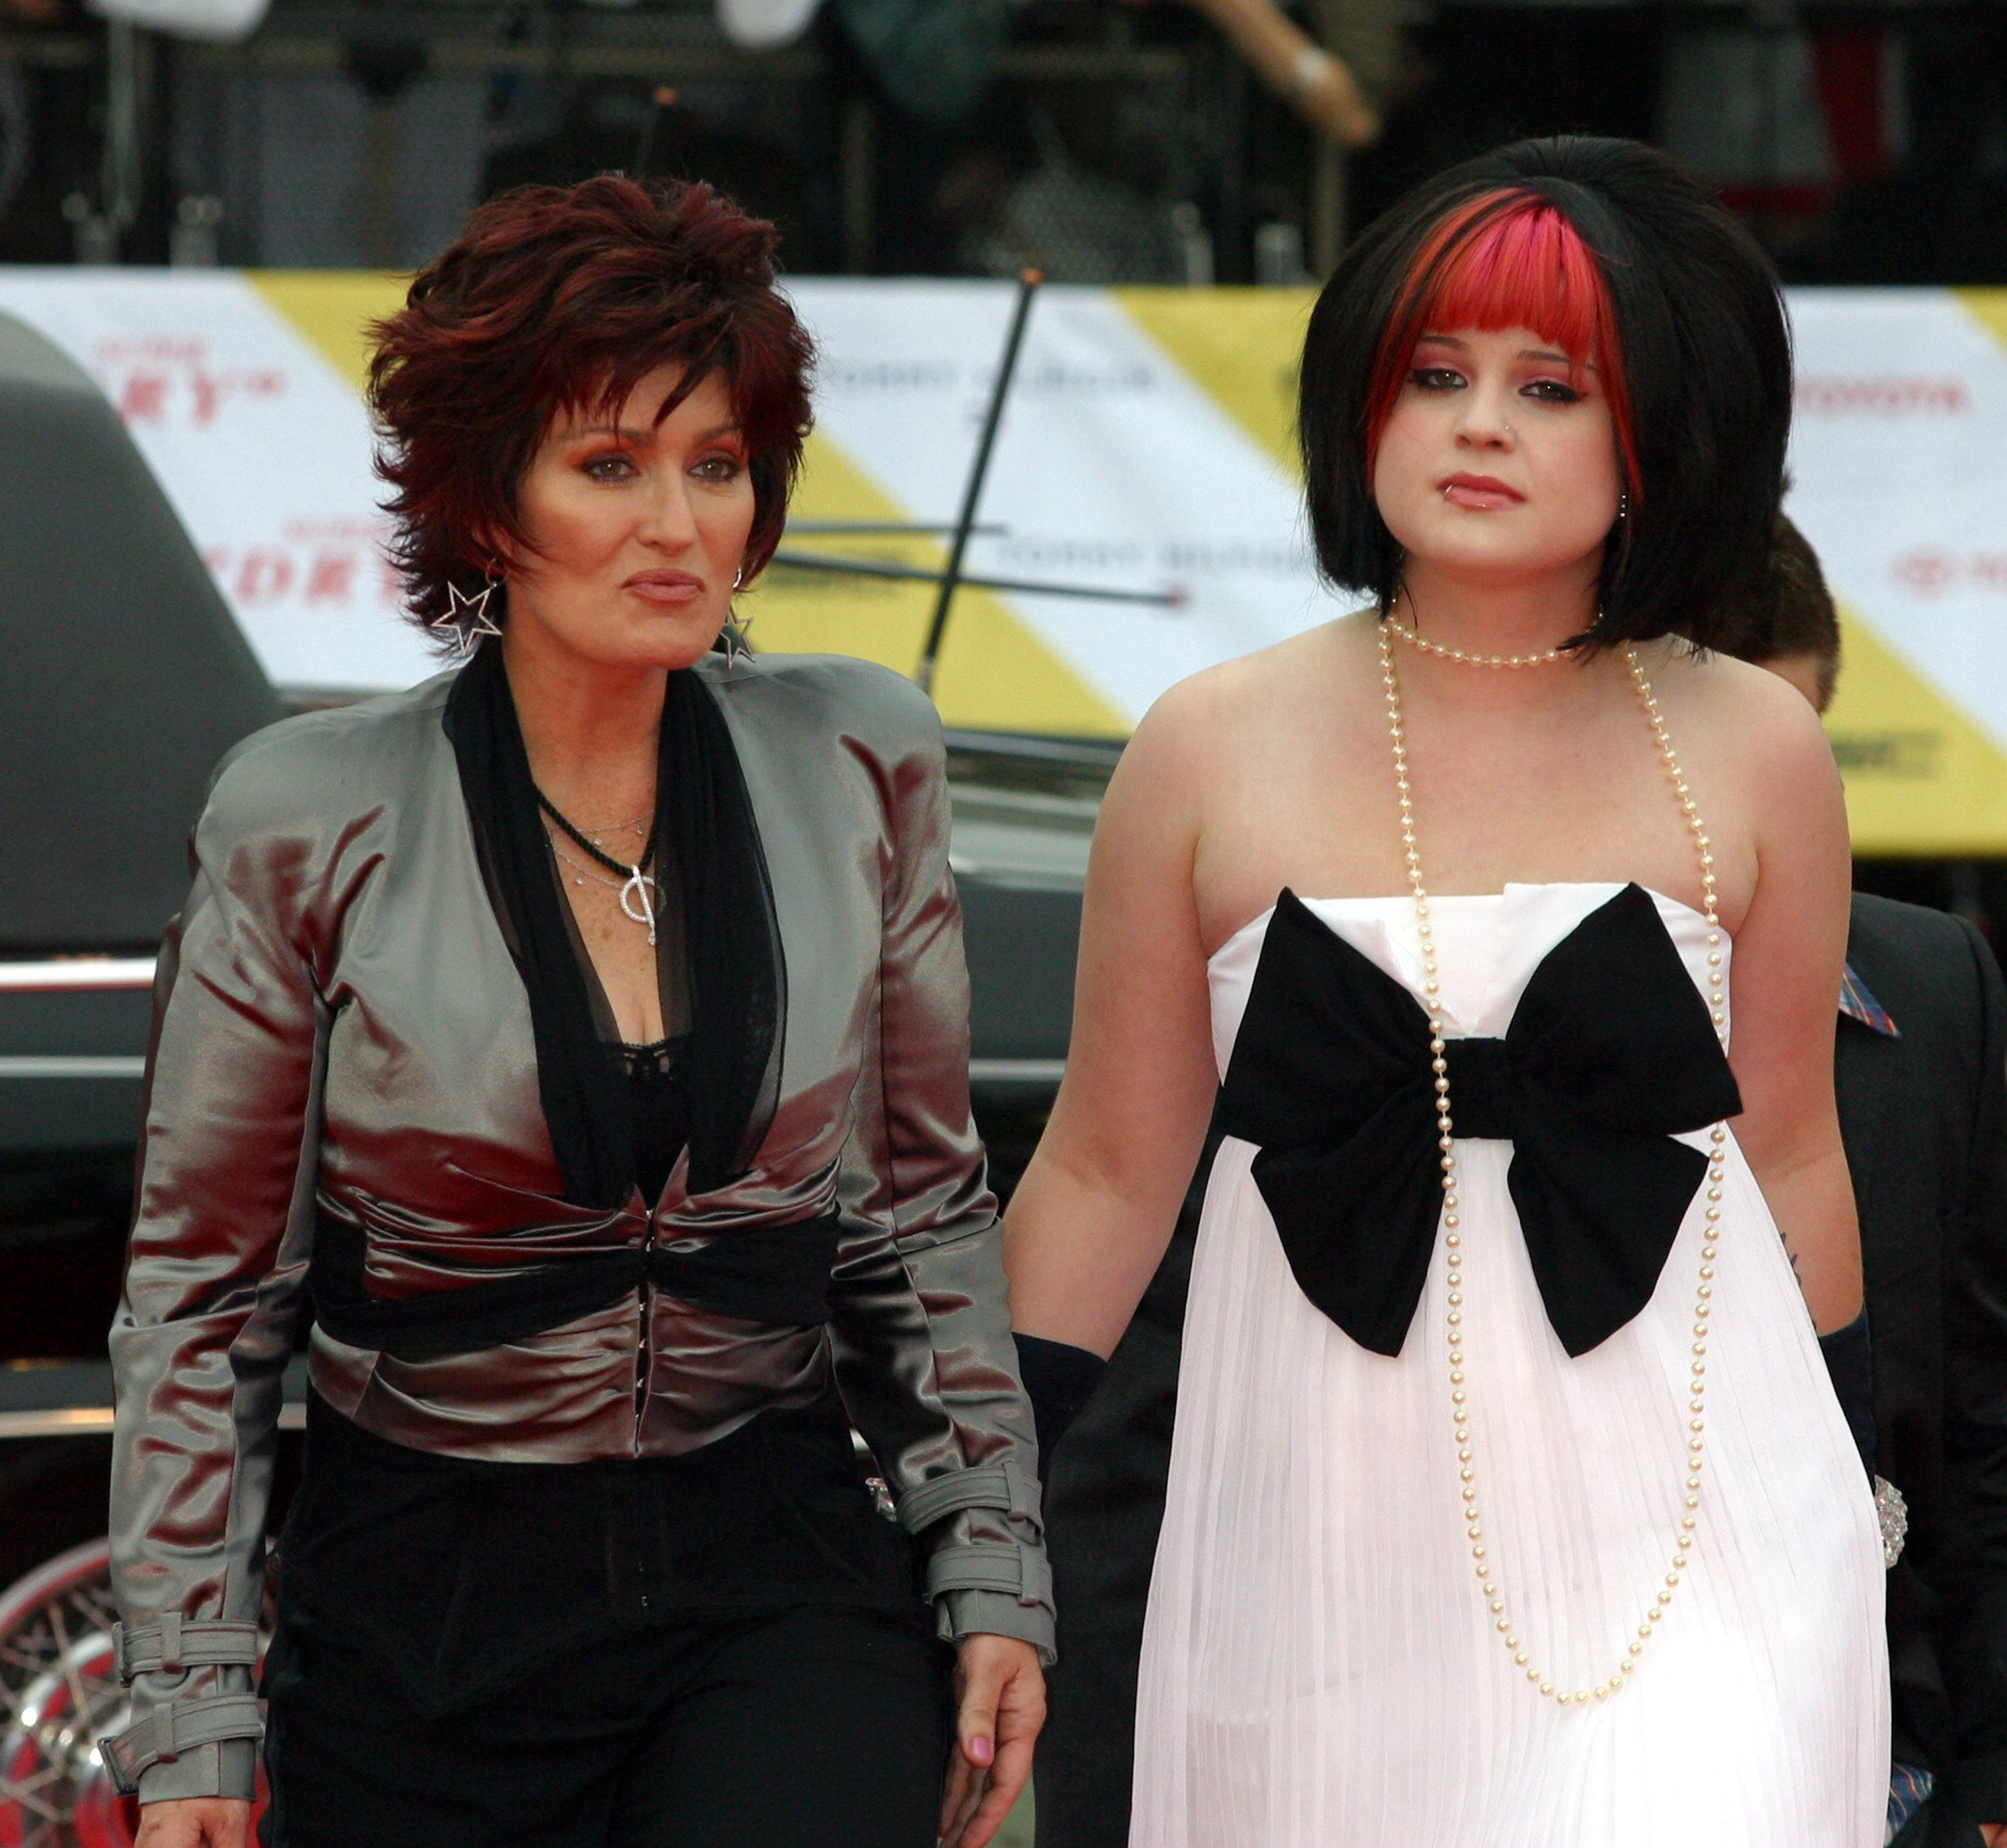 Sharon and Kelly Osbourne arrive at the MTV Video Music Awards Japan 2004 on May 23, 2004 in Tokyo, Japan.